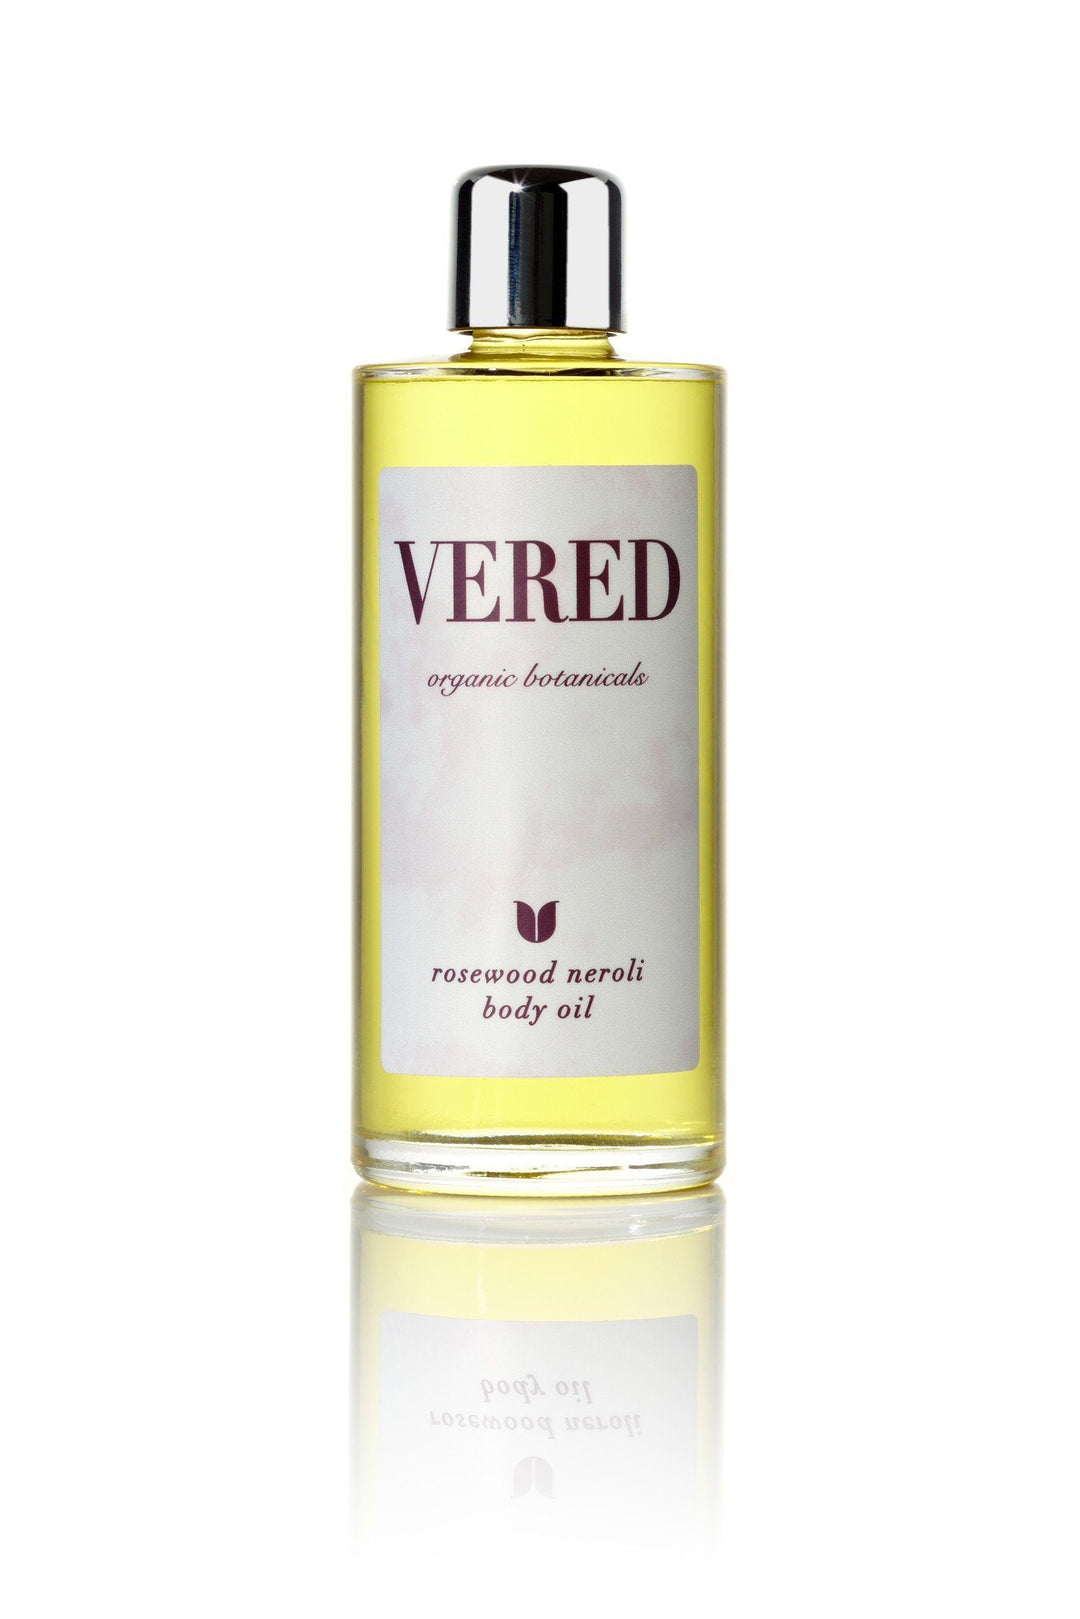 Vered Organic Botanicals Rosewood Neroli Body Oil